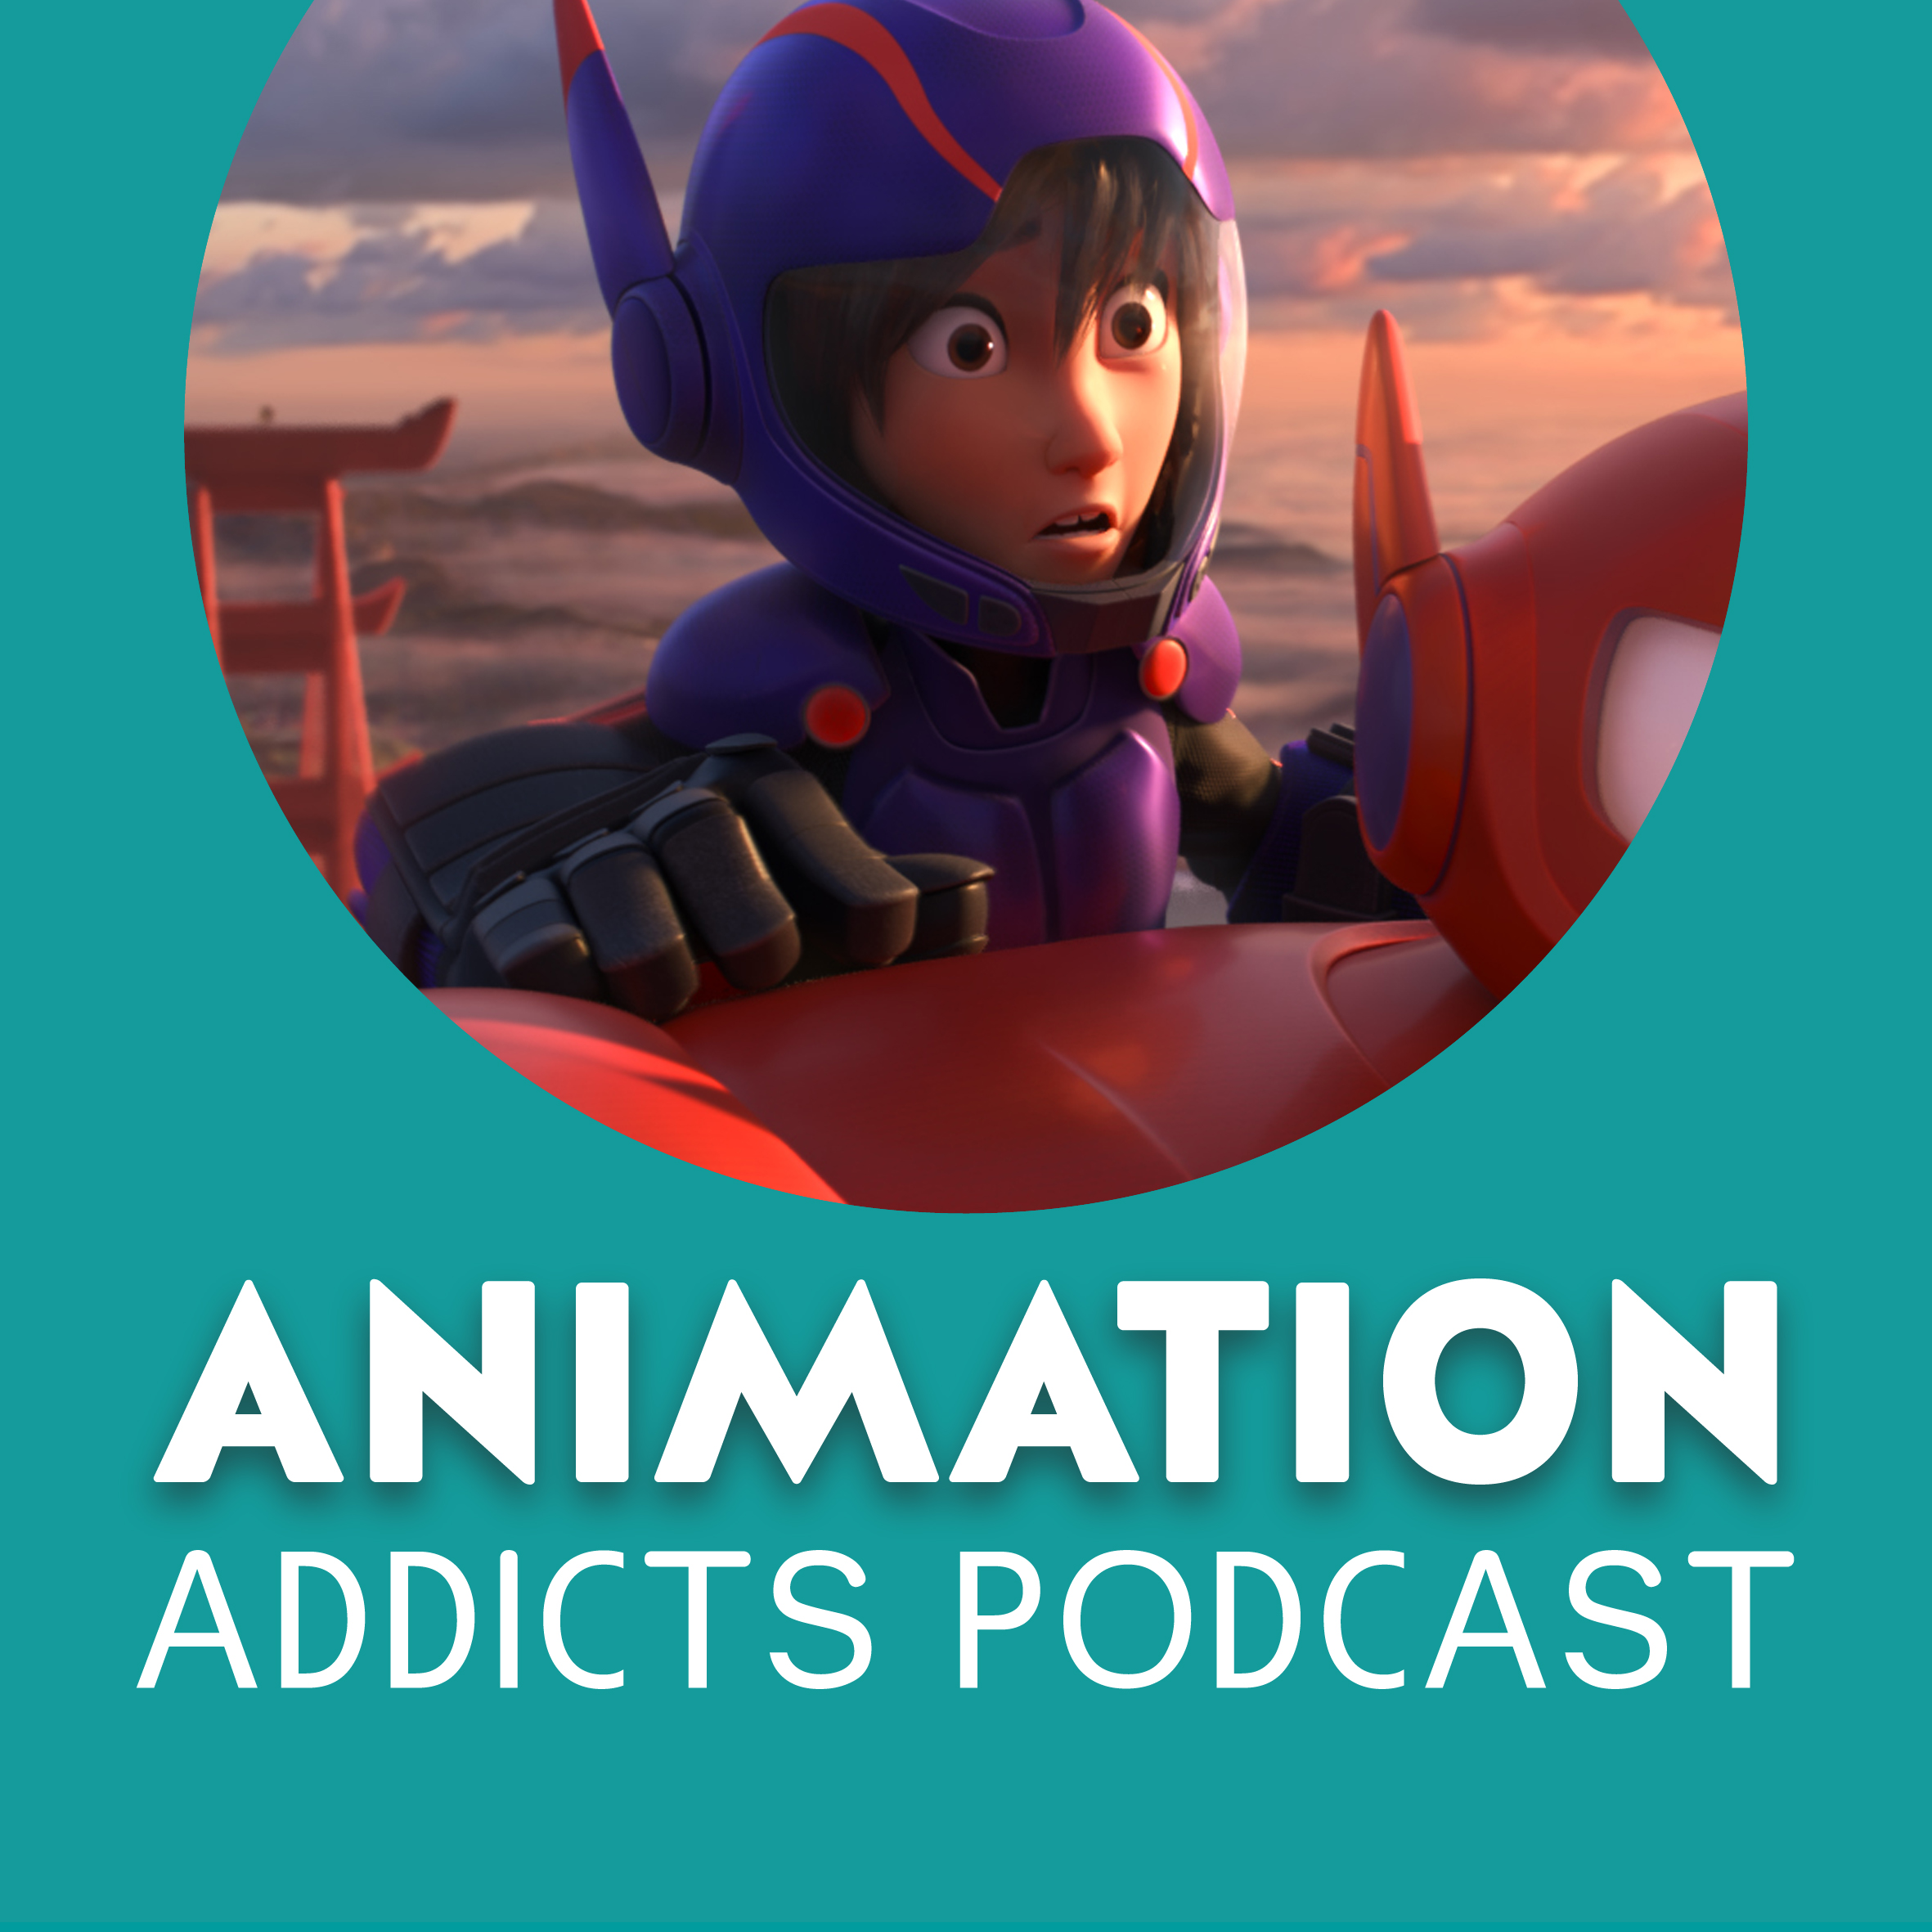 080 Big Hero 6 - Don't Even Compare It to Frozen!